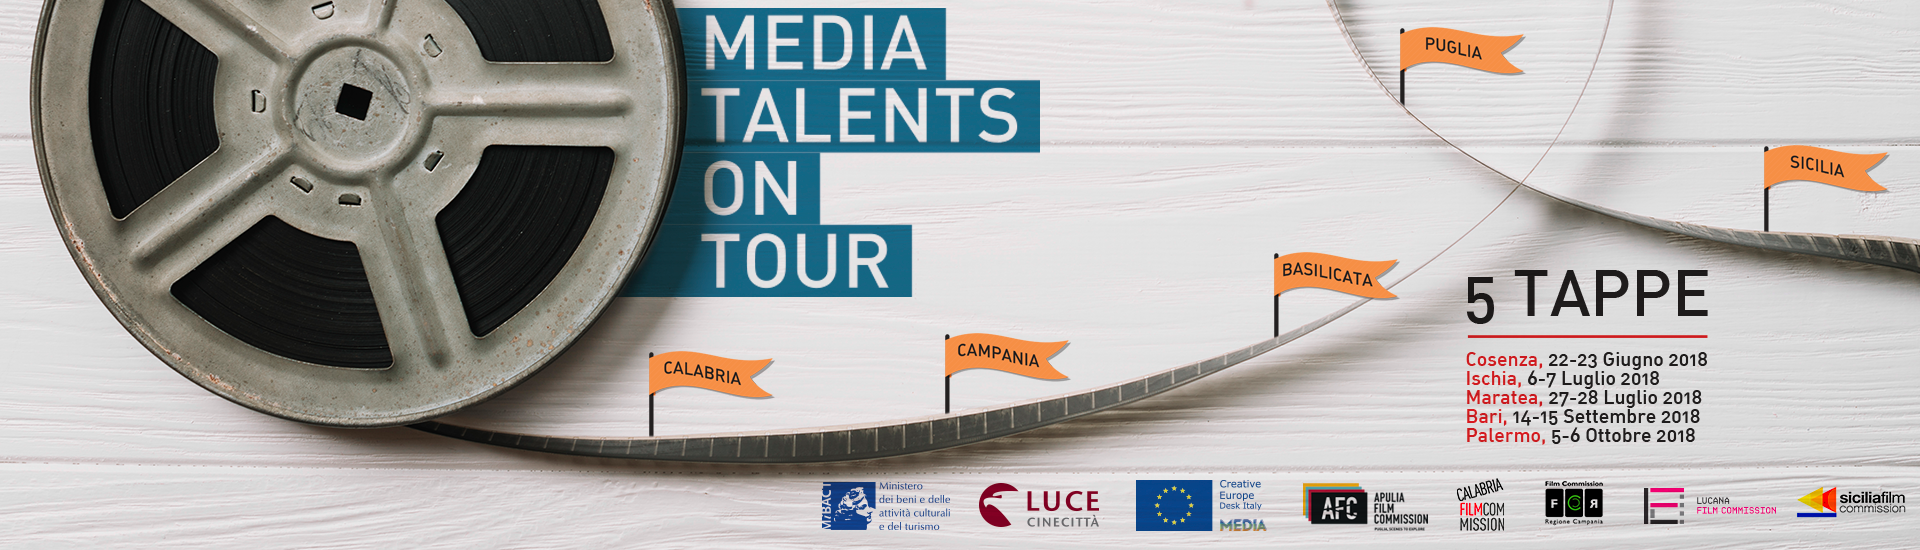 MEDIA, talenti in tour